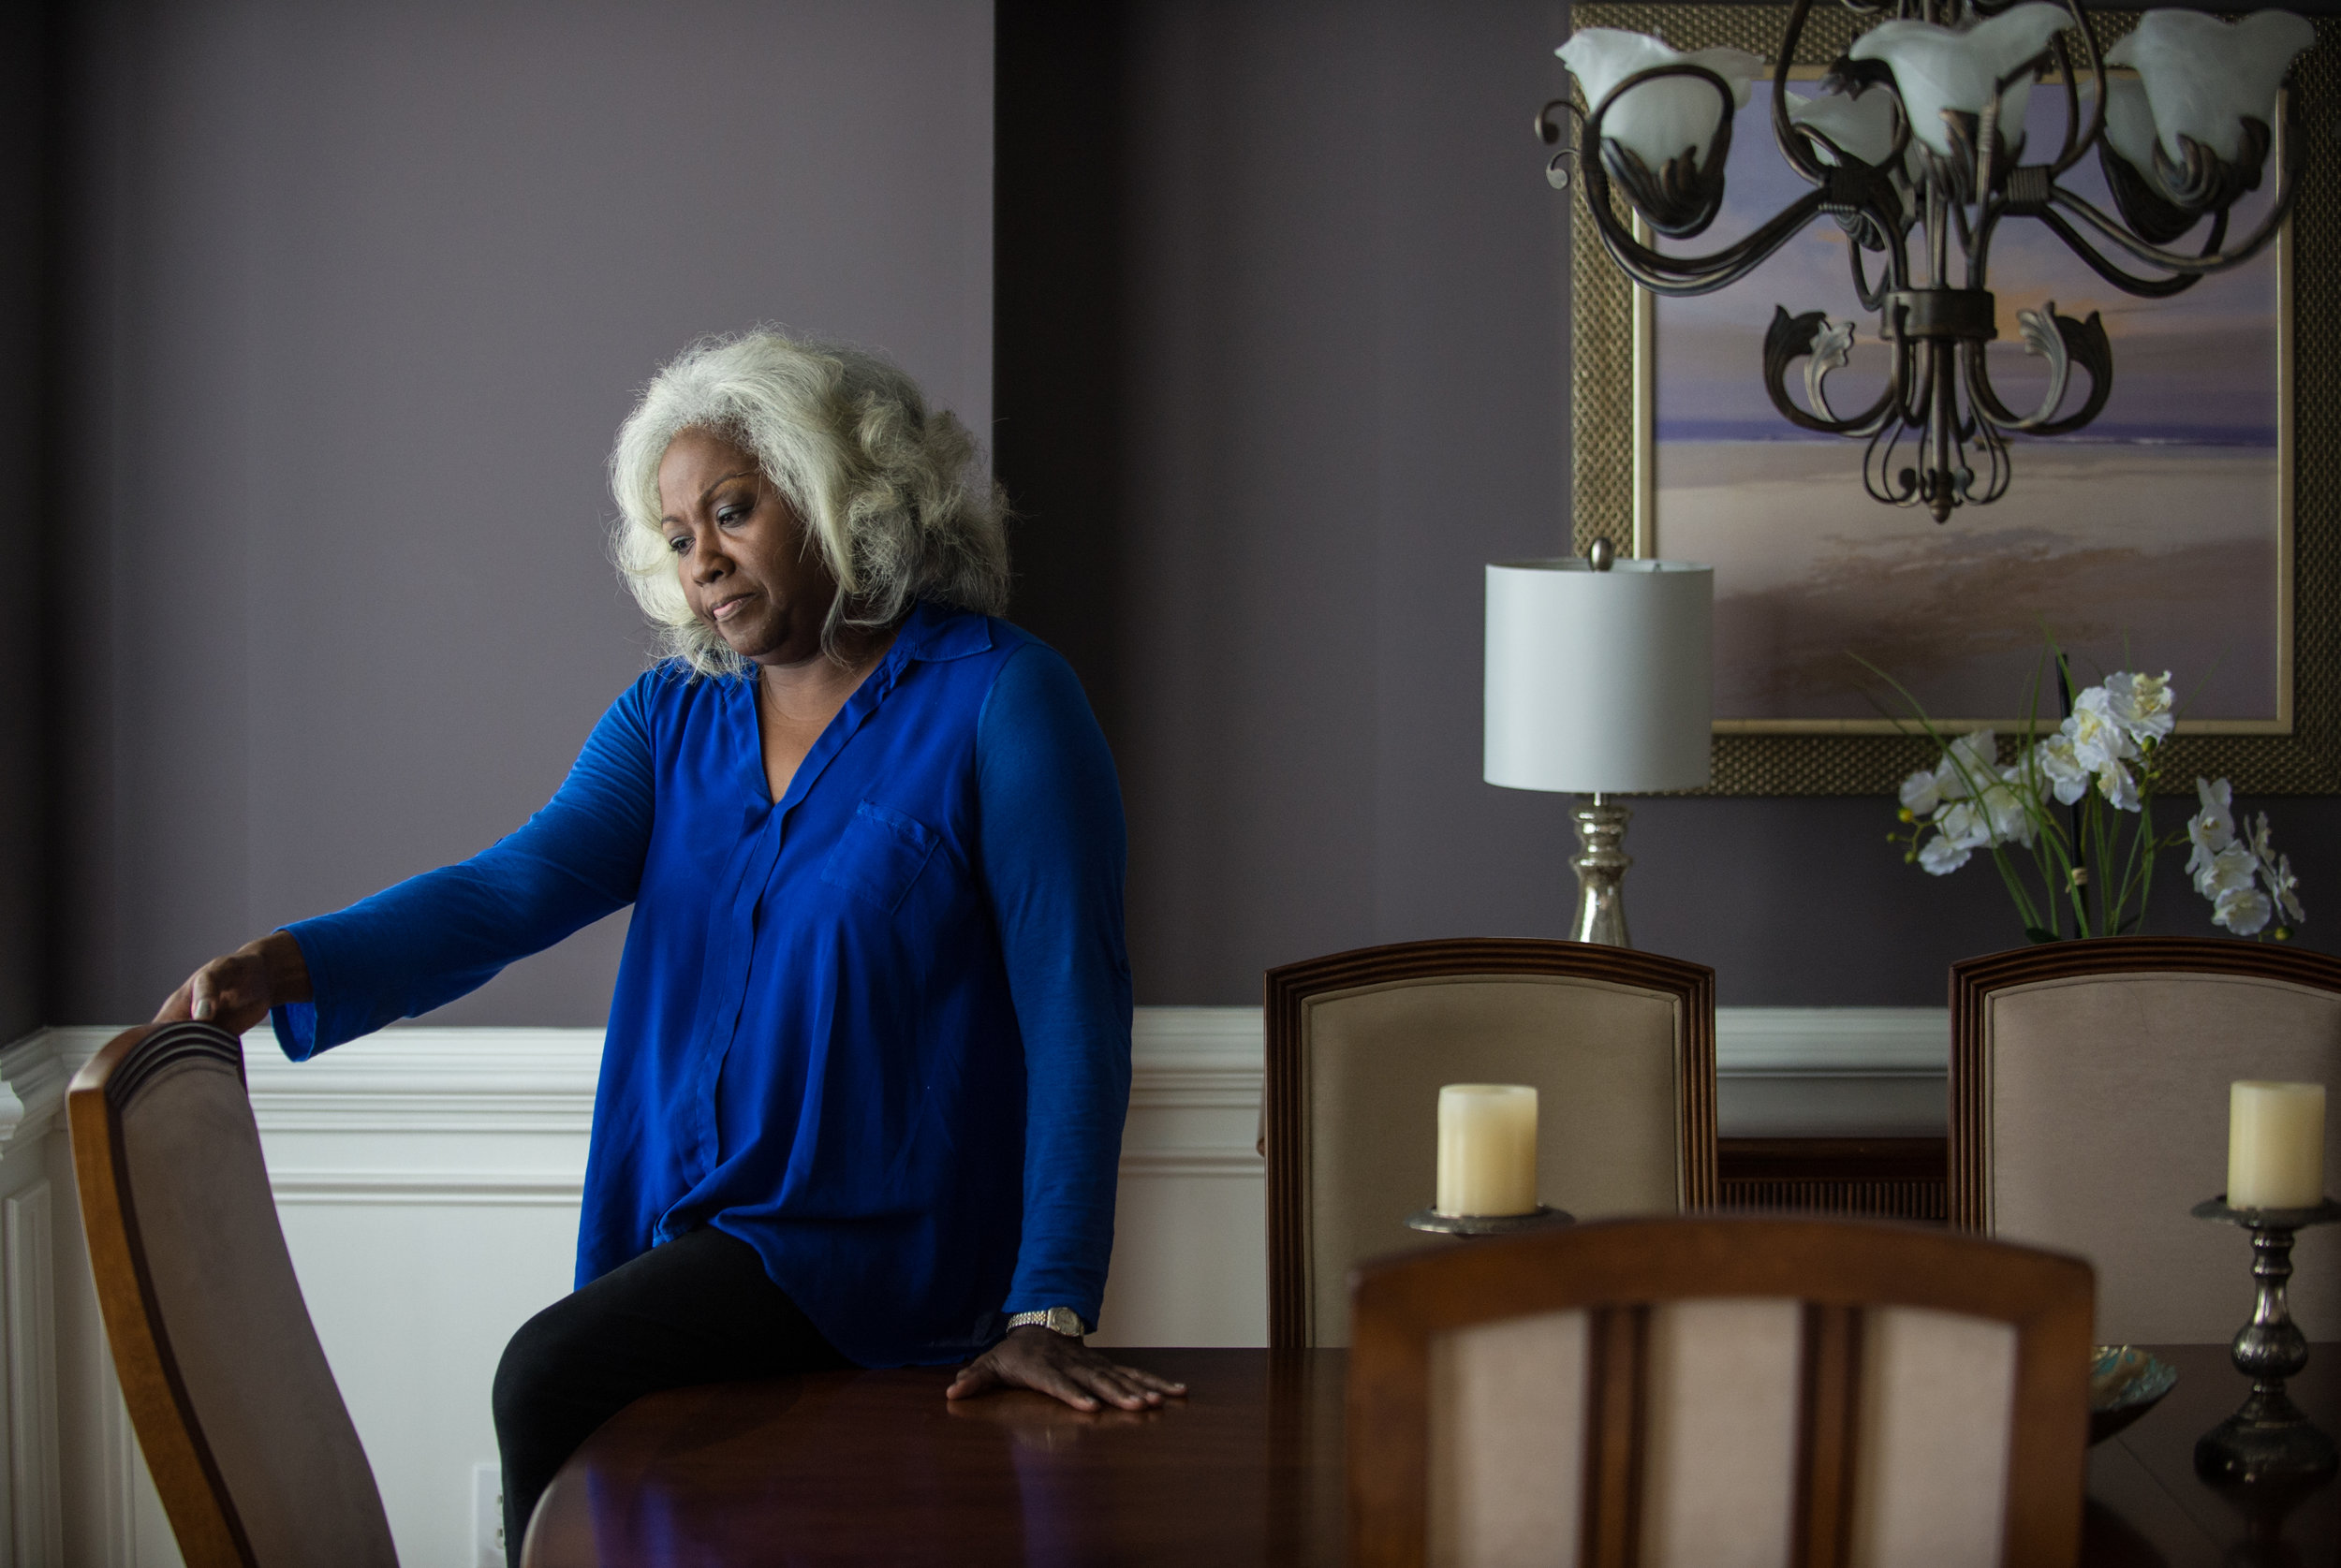 Deanna Baxam, mother of former US soldier Craig Baxam, speaks about her son at her Dacula, Ga., home on 15 August 2016. In 2014, Craig Baxam pleaded guilty to destroying records that might be used in a terrorism investigation and was sentenced to seven years in prison. He had been charged in early 2012 with attempting to provide material support to terrorist organisation al-Shabaab, which is affiliated with al-Qaida. Photograph: Bita Honarvar© 2016 Bita Honarvar